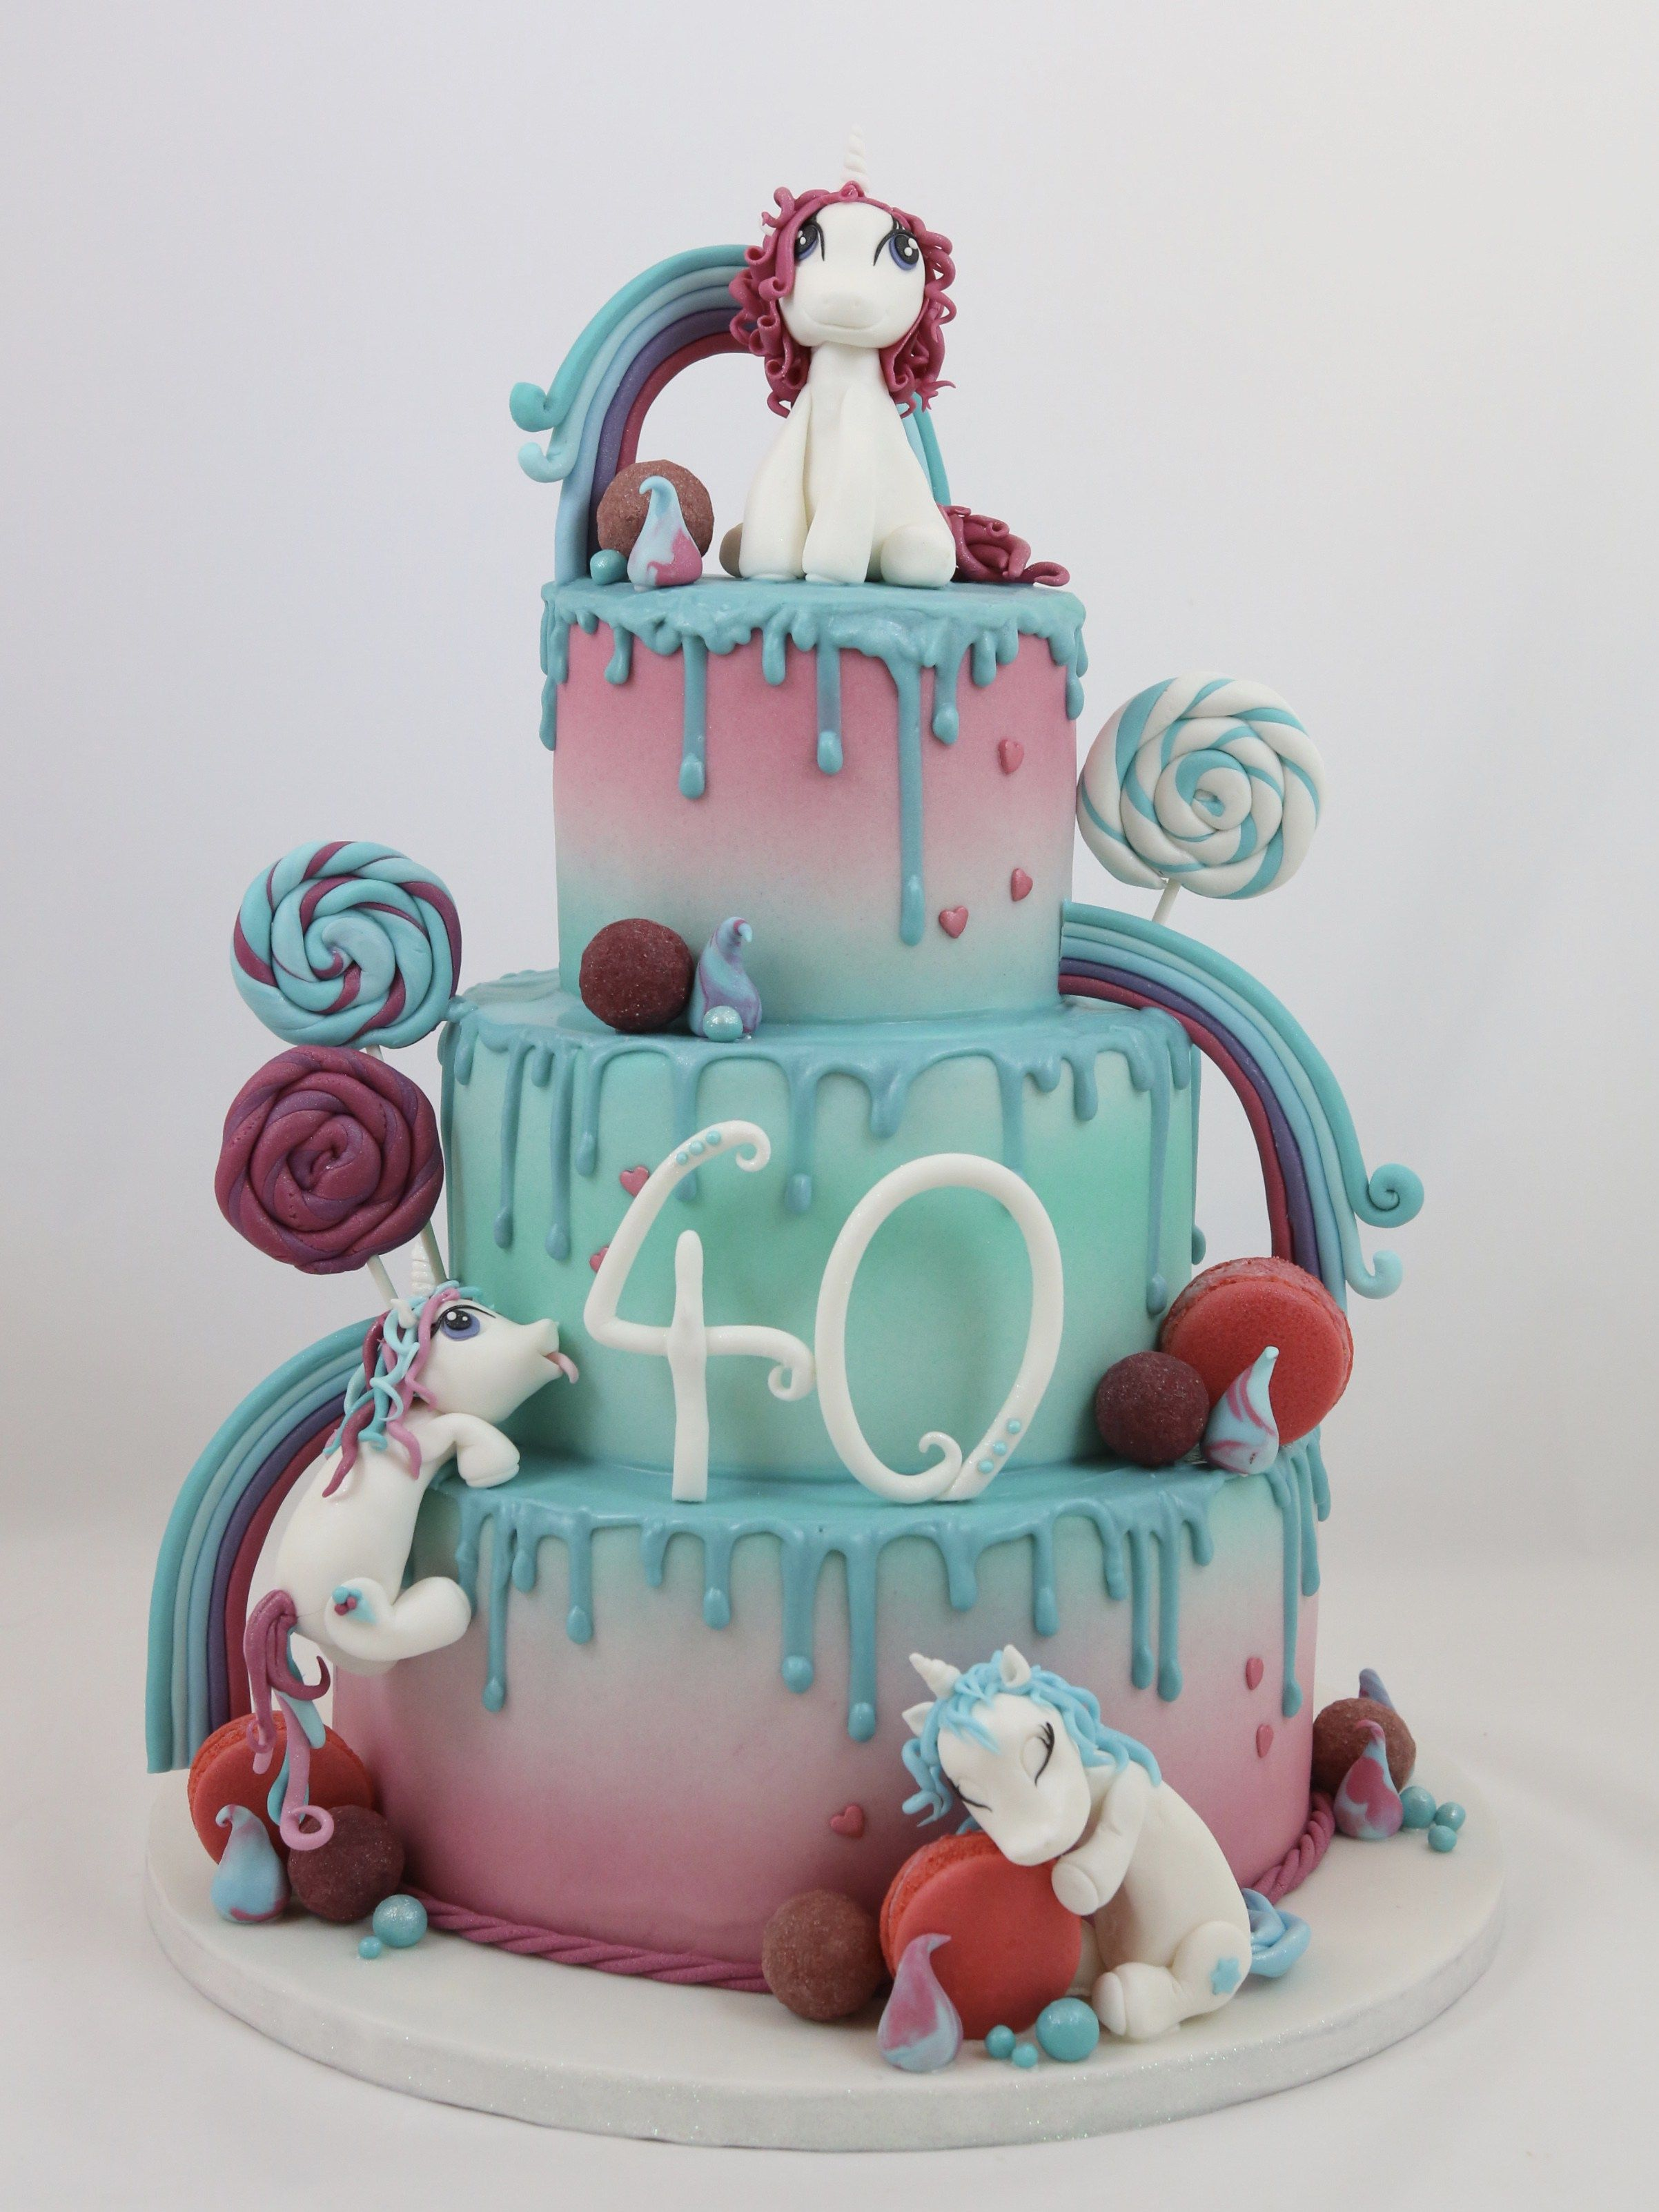 drip cake drippy torte einhorn unicorn macarons fondant. Black Bedroom Furniture Sets. Home Design Ideas